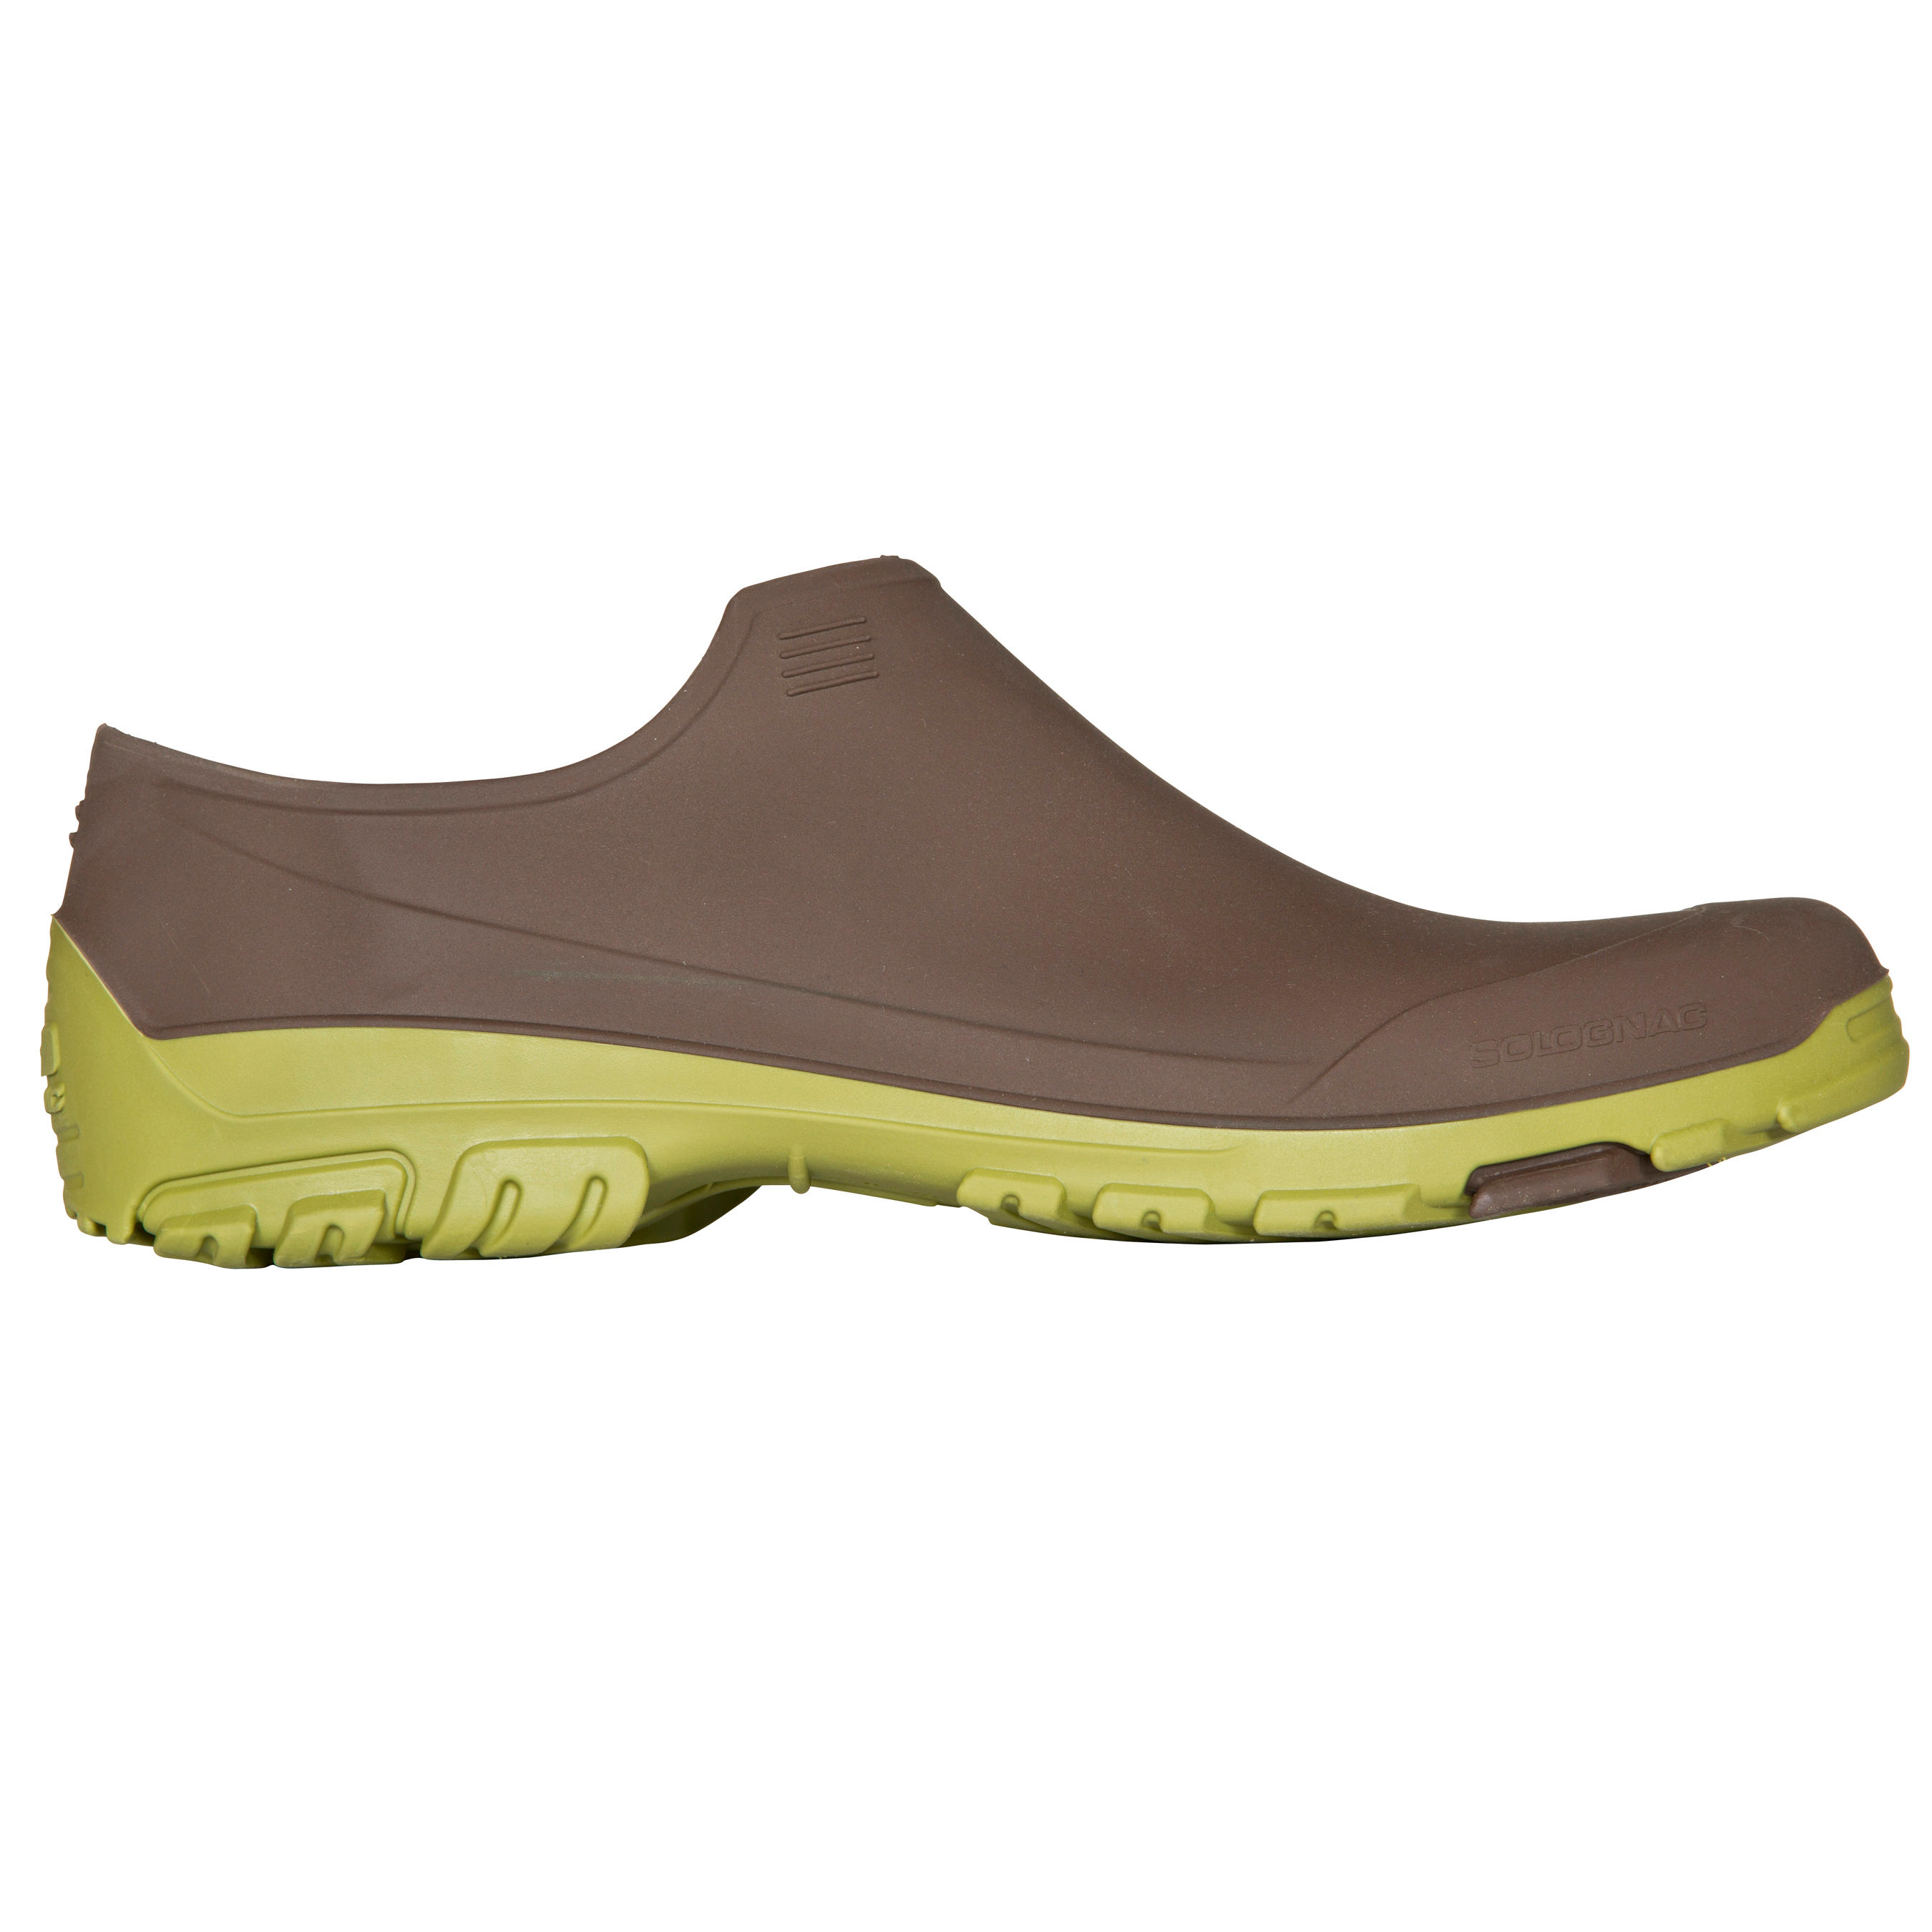 Men Inverness 100 Clogs - Brown